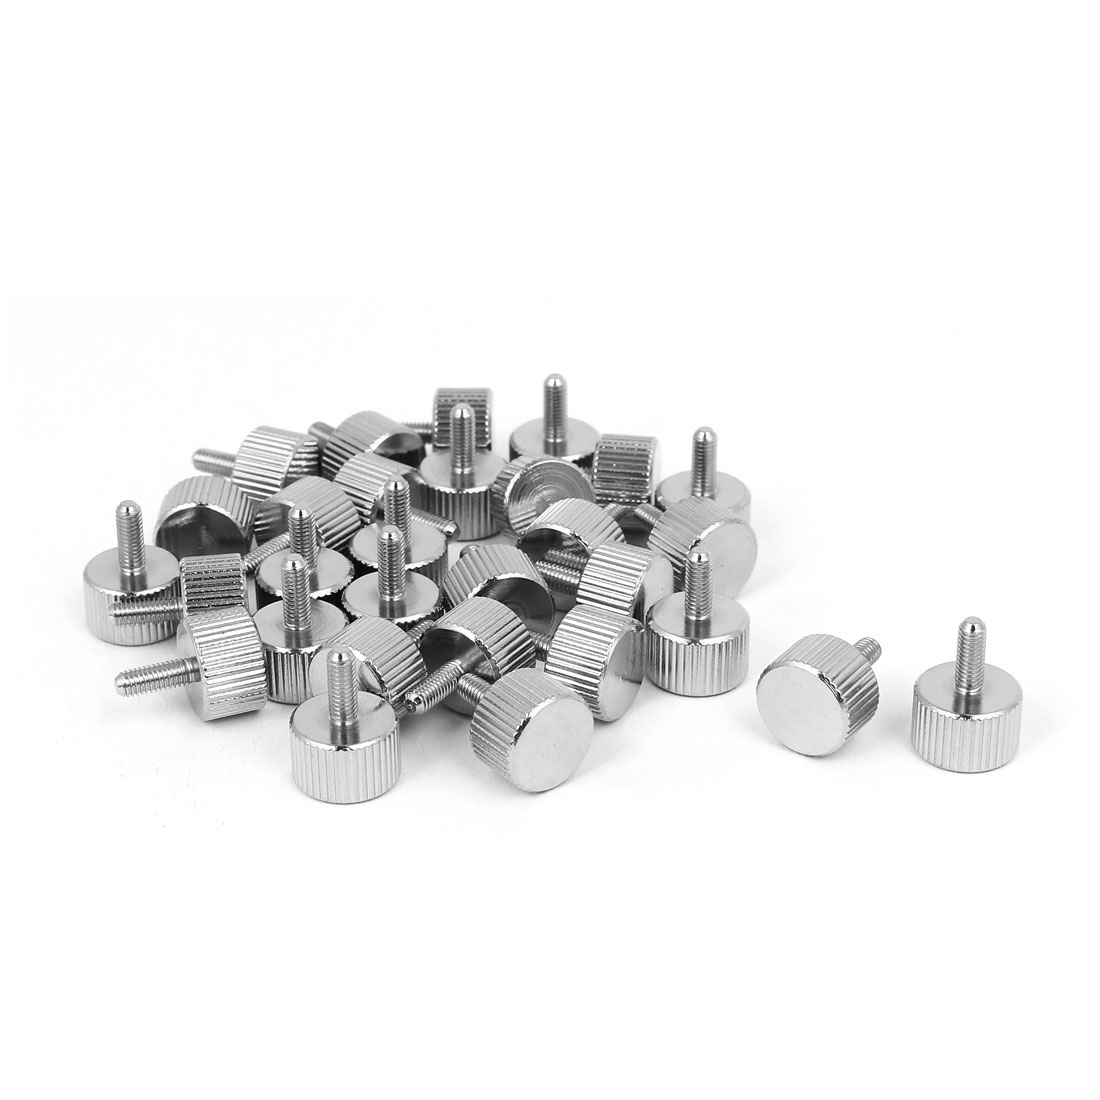 M3x8mm Nickel Plated Flat Head Knurled Thumb Screw 30pcs for Computer PC Case